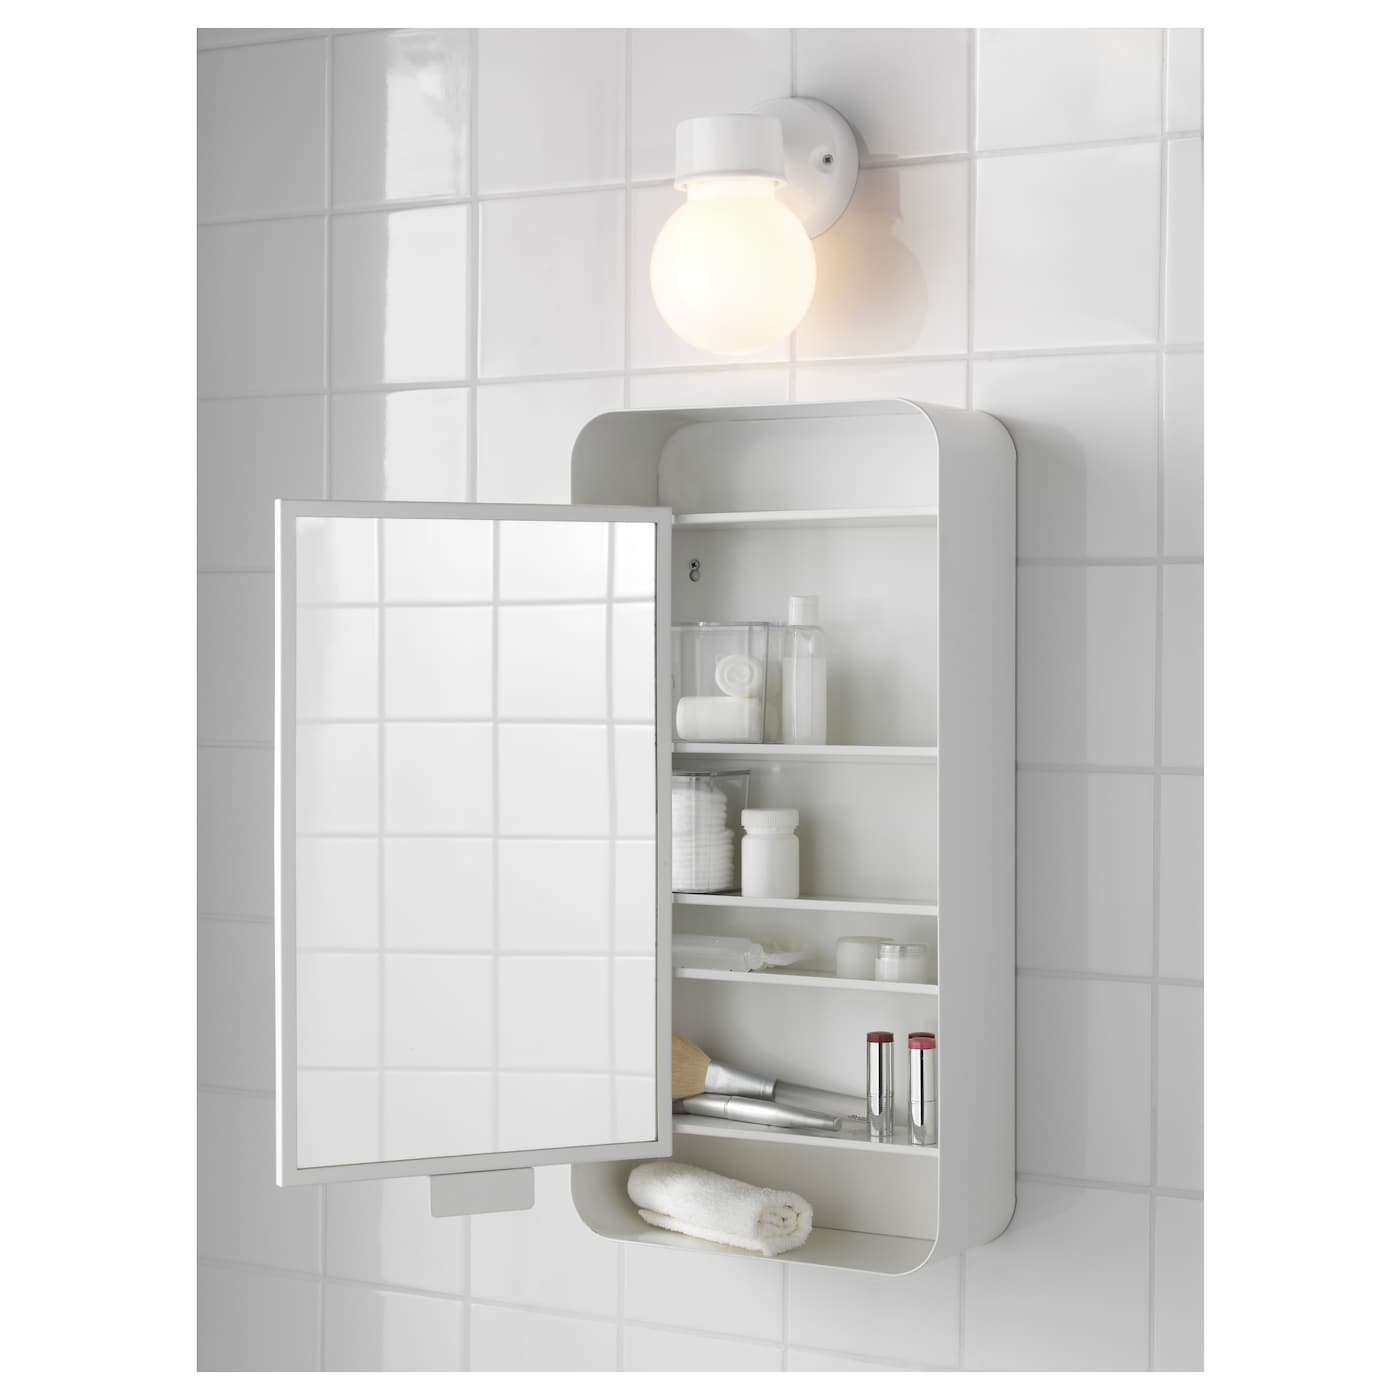 white bathroom mirror with shelf. ikea gunnern mirror cabinet with 1 door shelves raised edging for safe storage. white bathroom shelf